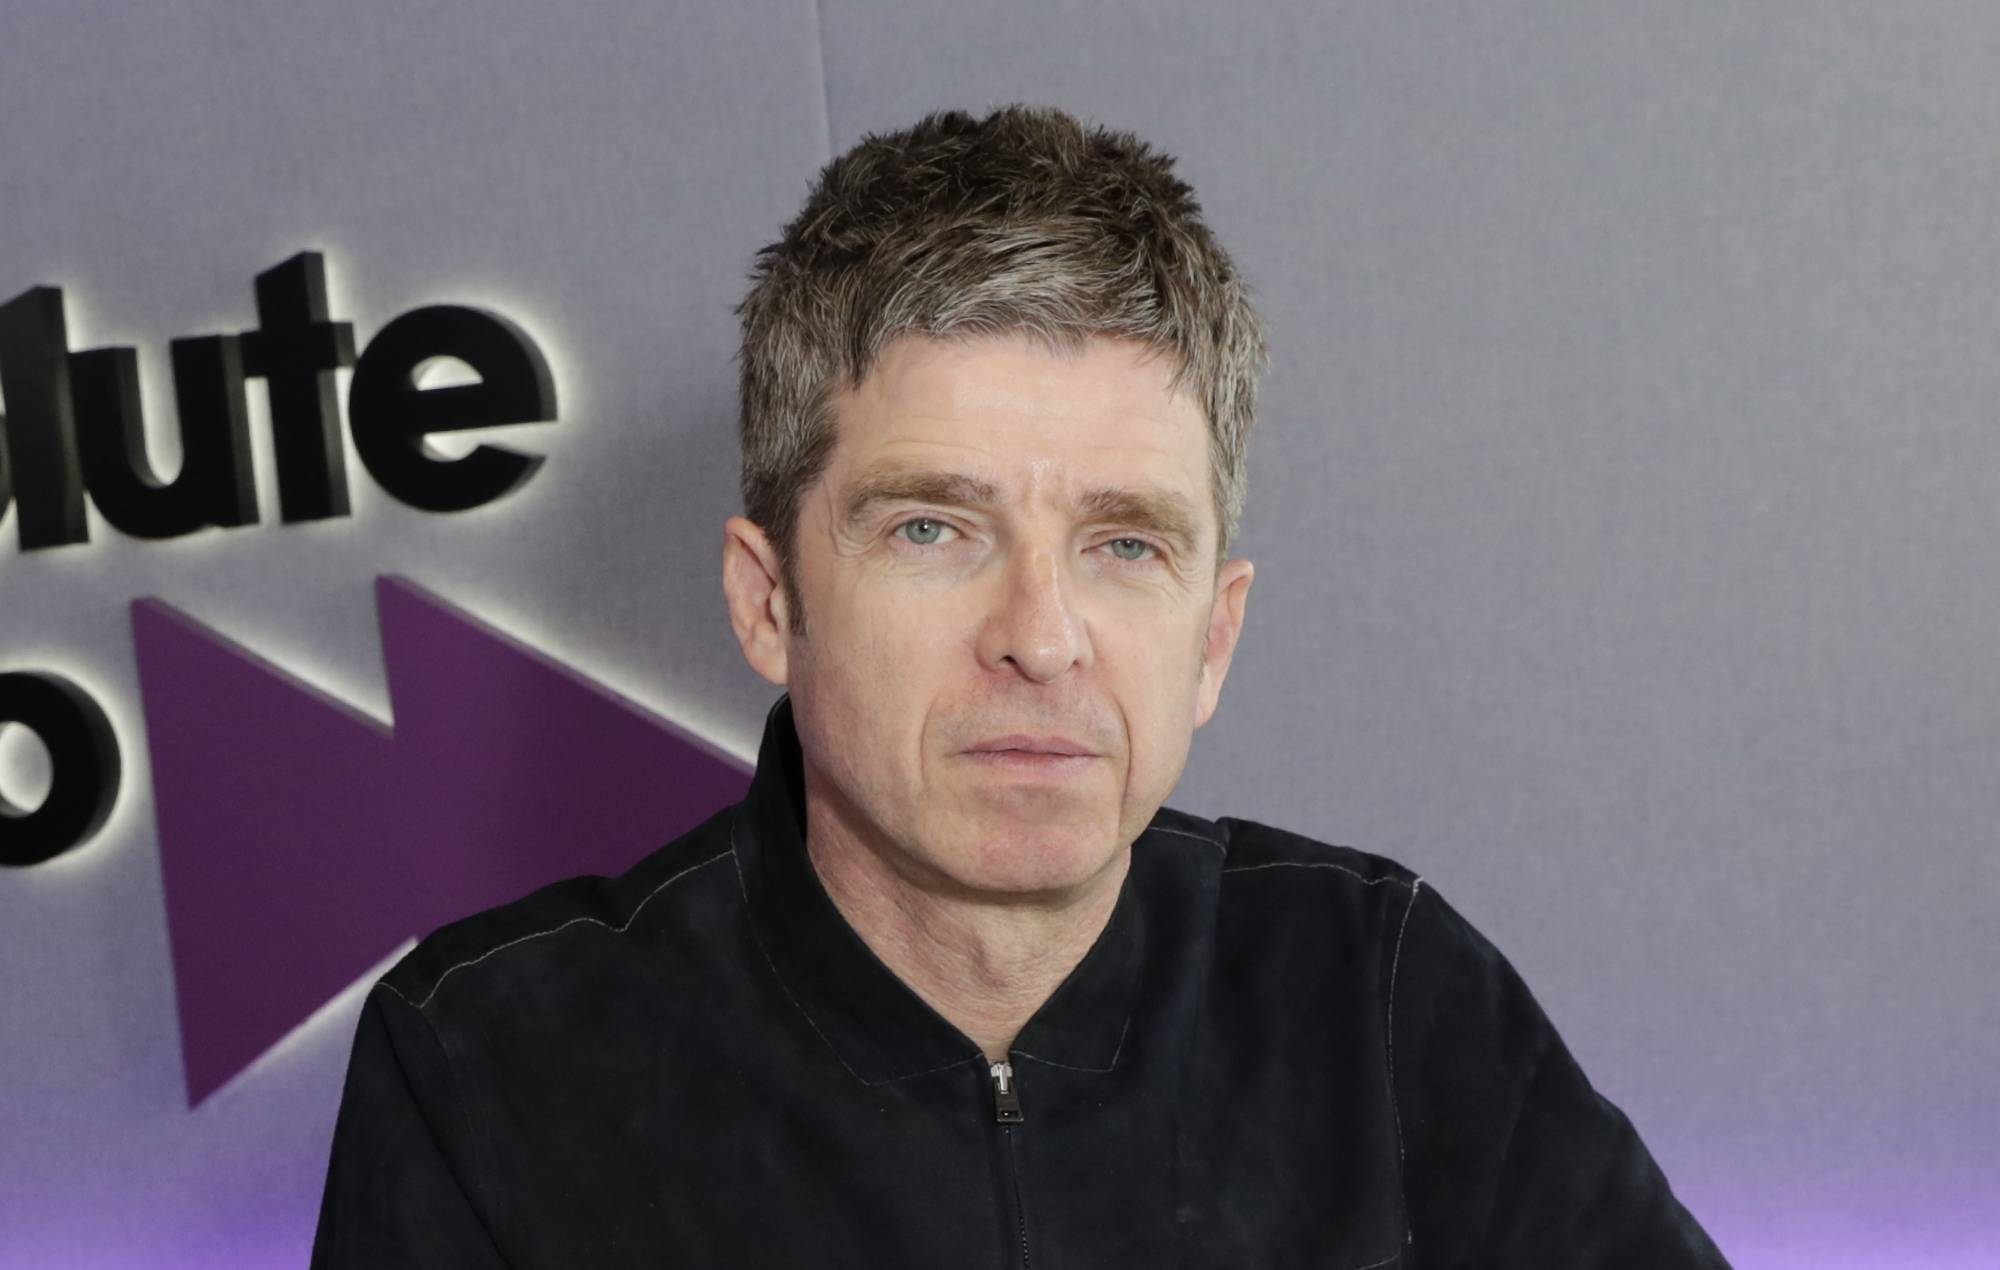 Noel Gallagher About The Oasis Break Up and Reunion